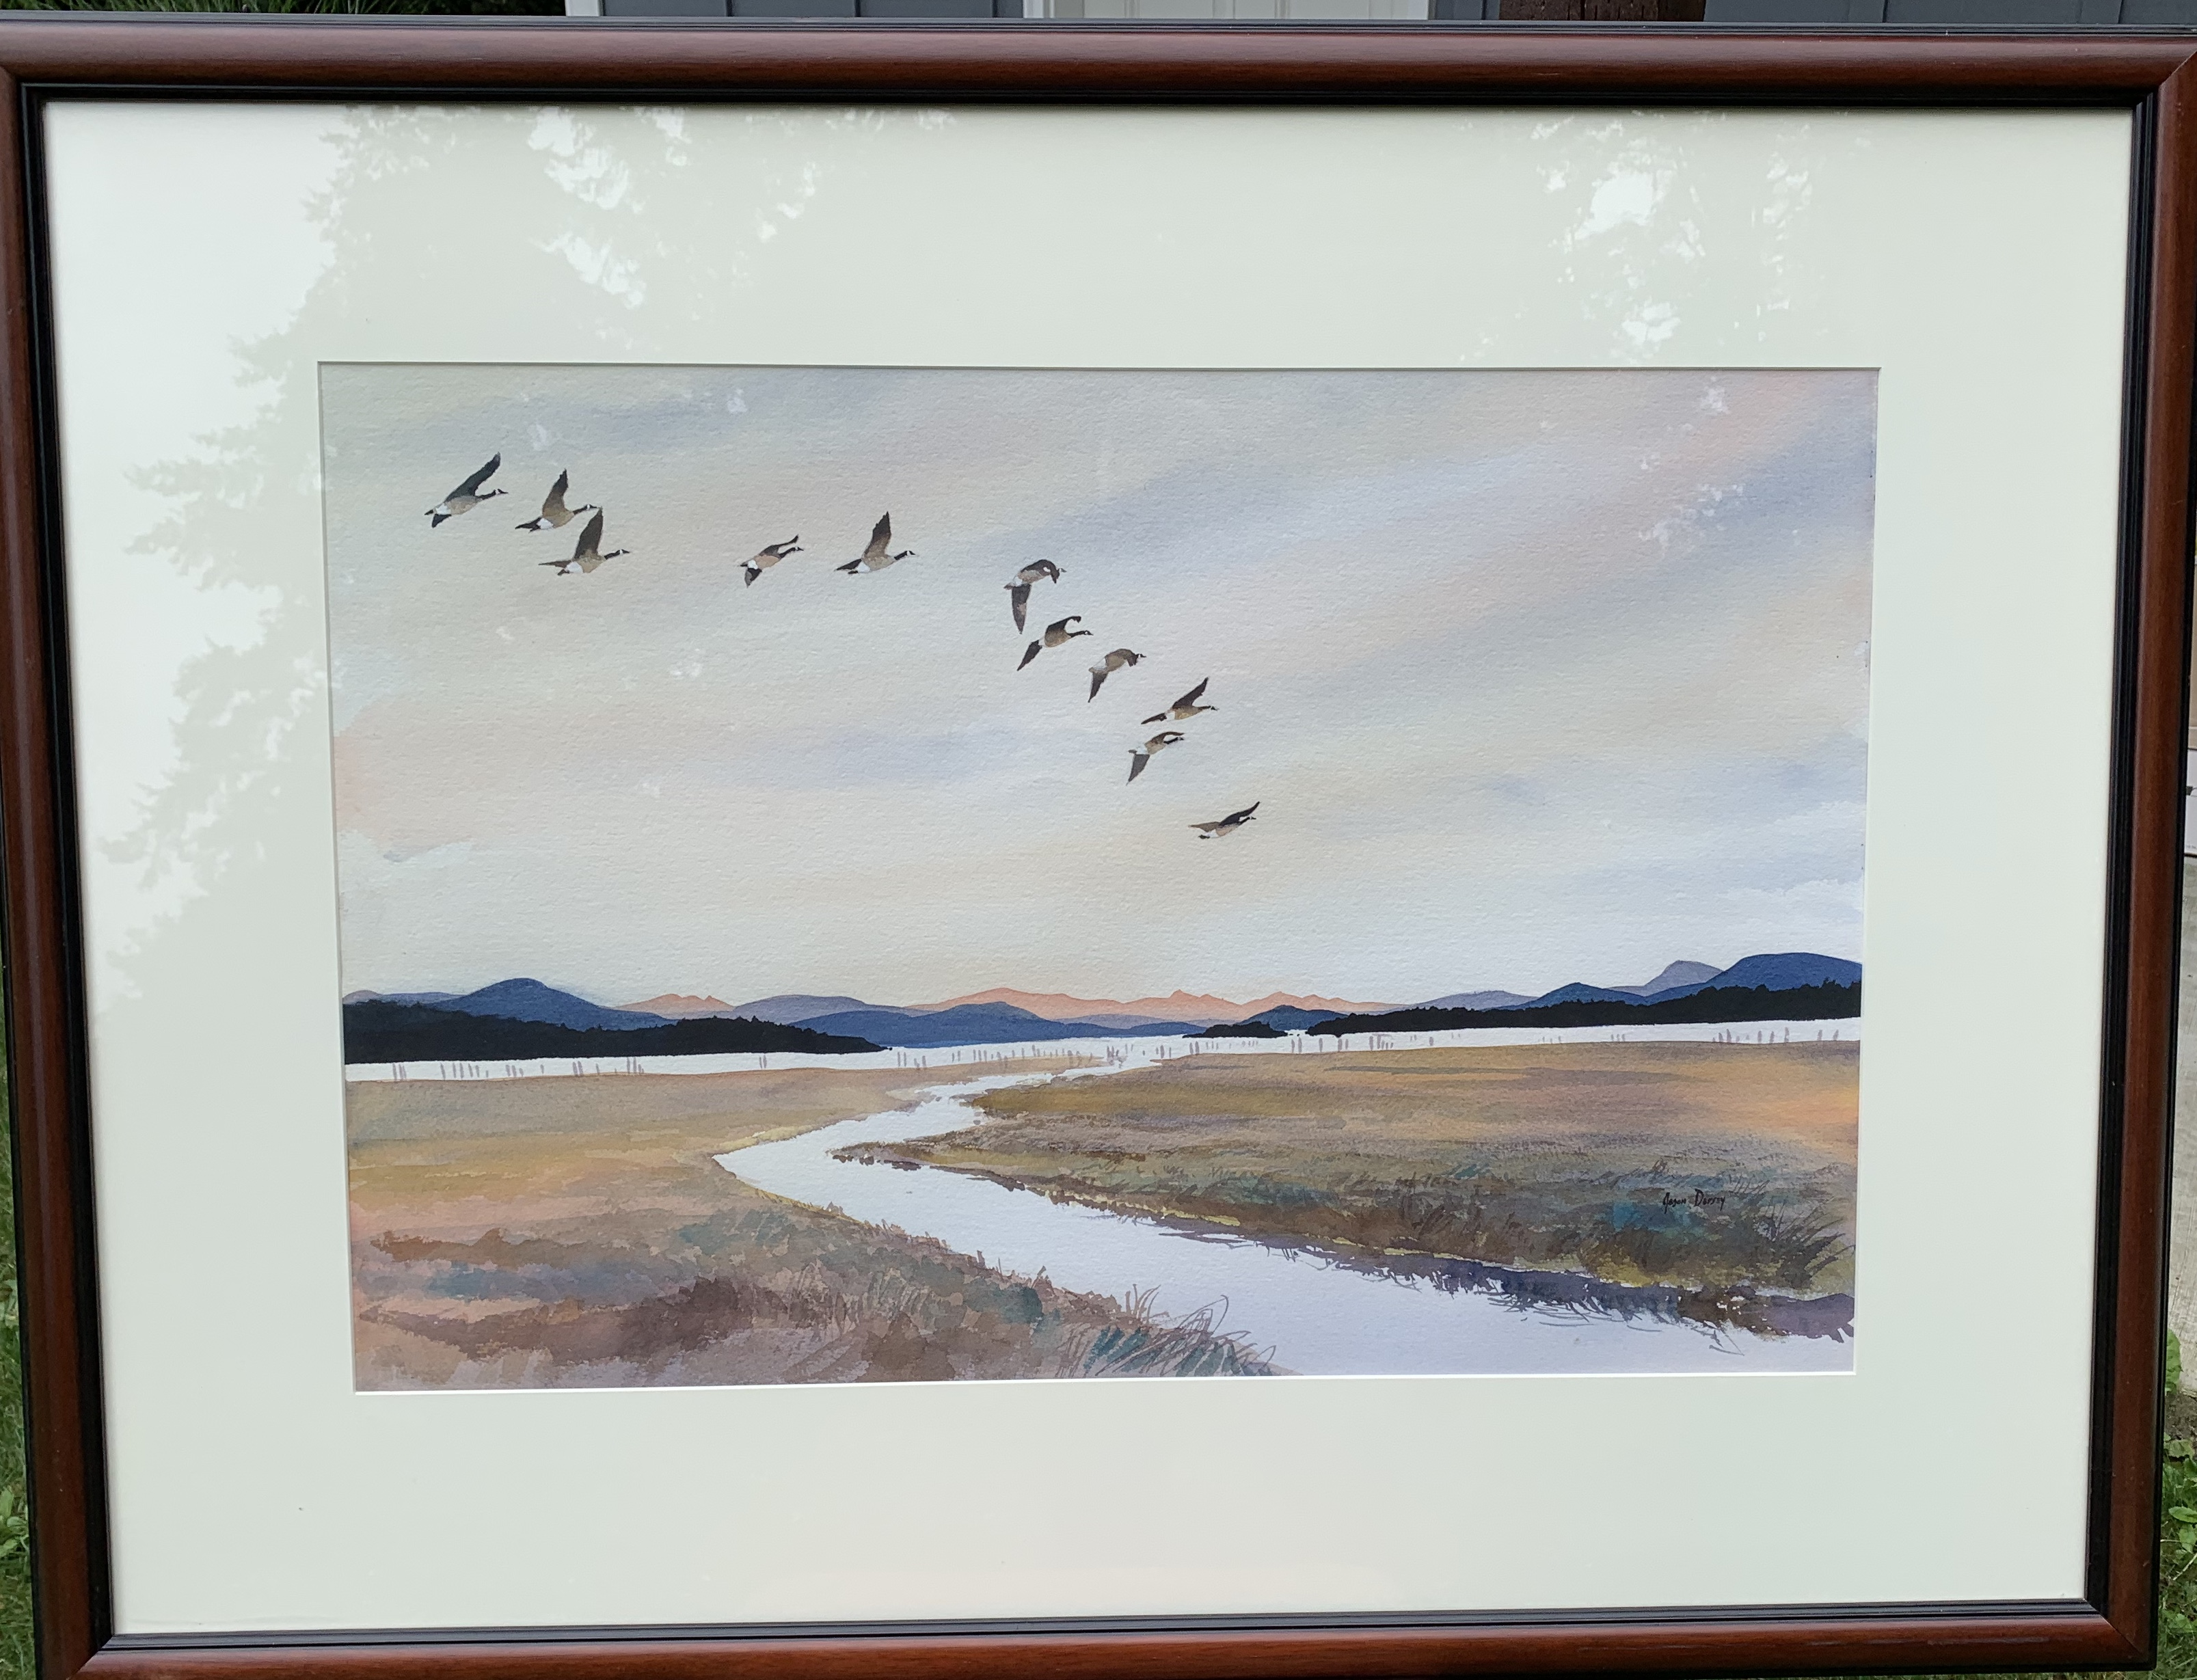 Geese over Skagit Bay